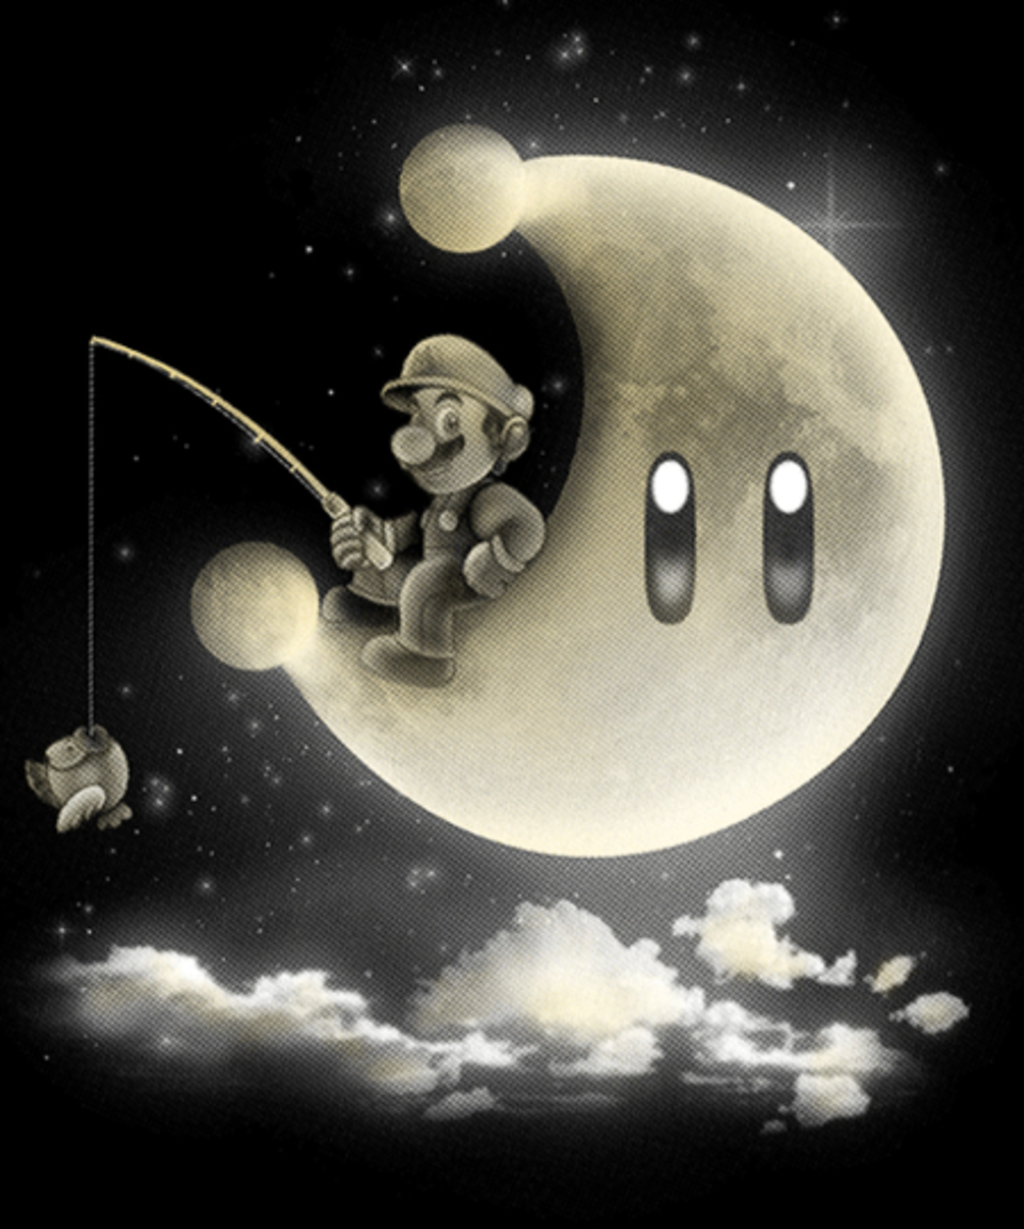 Qwertee: It's a dream, Mario